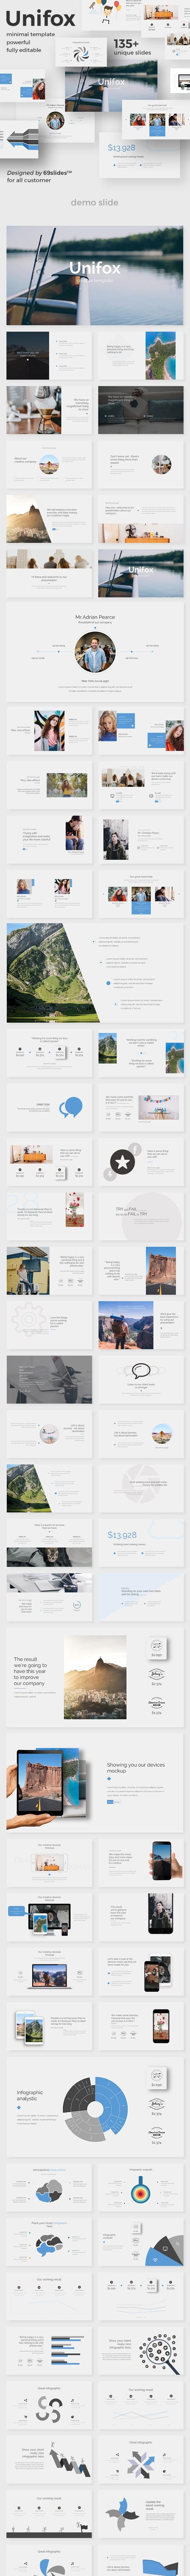 Unifox Creative Google Slide Template